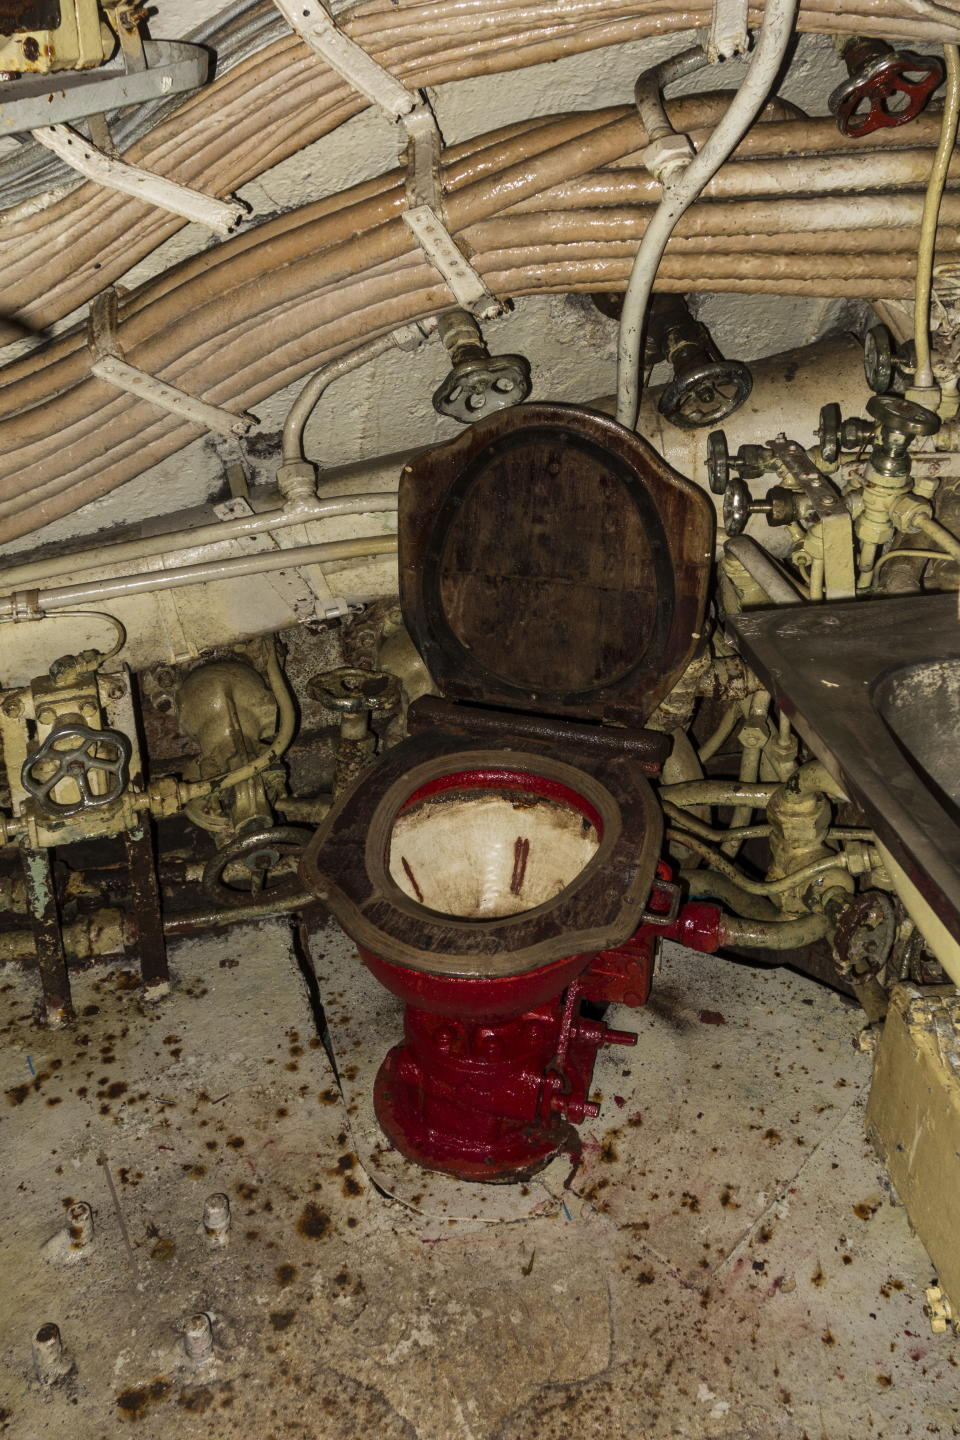 Toilet in Russian diesel-electric submarine B-143 / U-480 Foxtrot type 641 at the Seafront Maritime Theme Park in Zeebrugge, Belgium. (Photo by: Arterra/Universal Images Group via Getty Images)